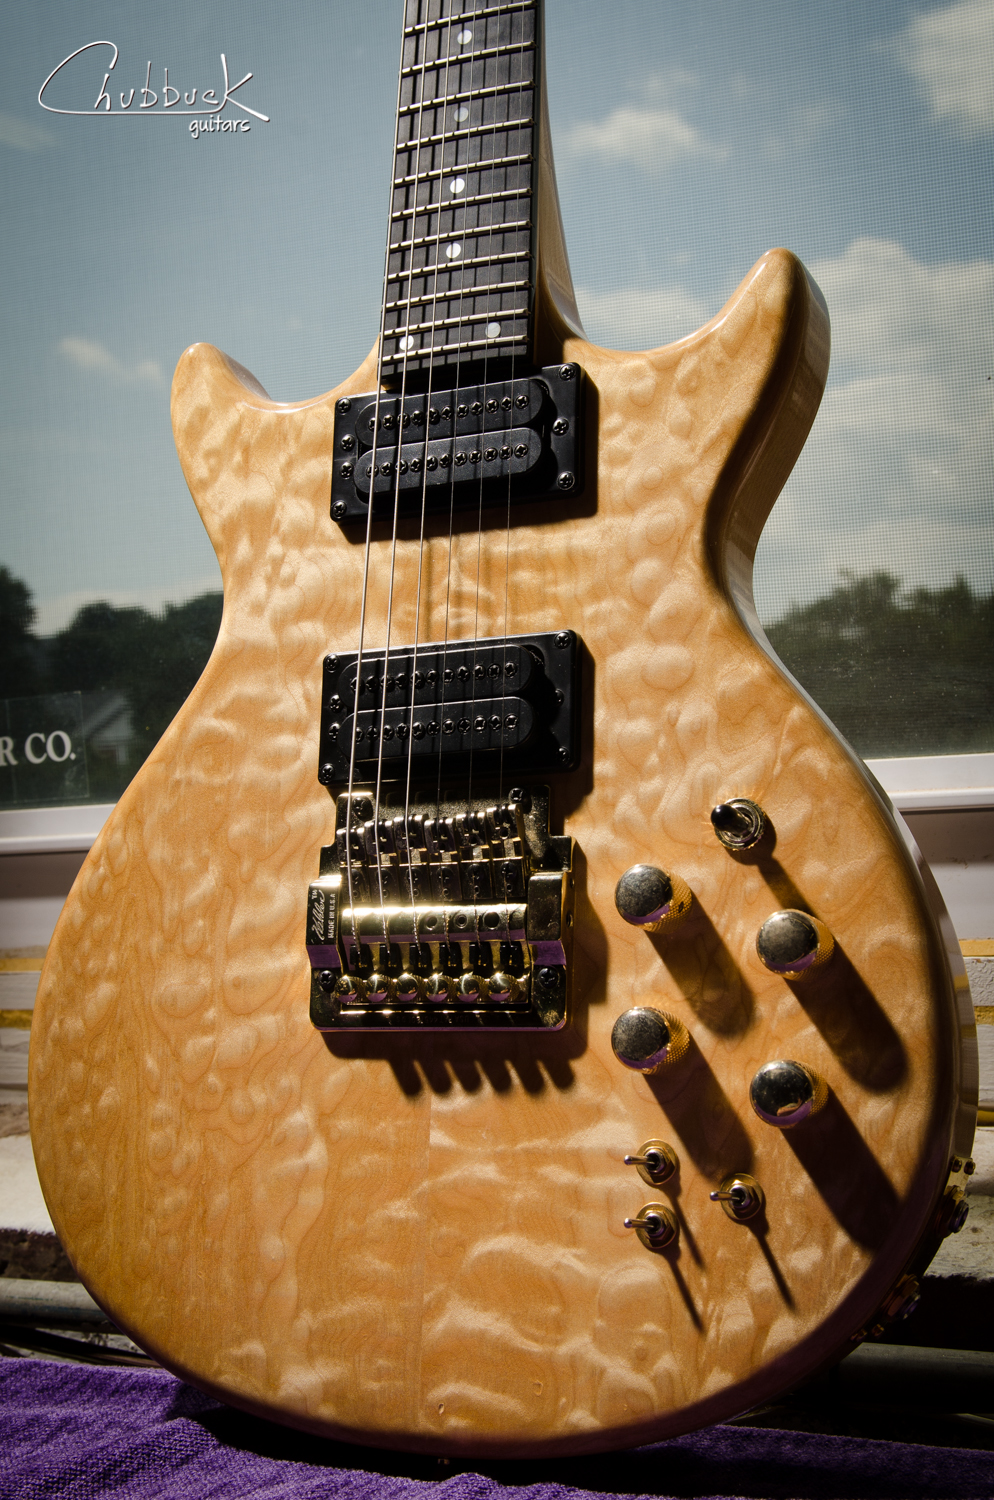 1987 Carvin DC-150 with a clear finish.